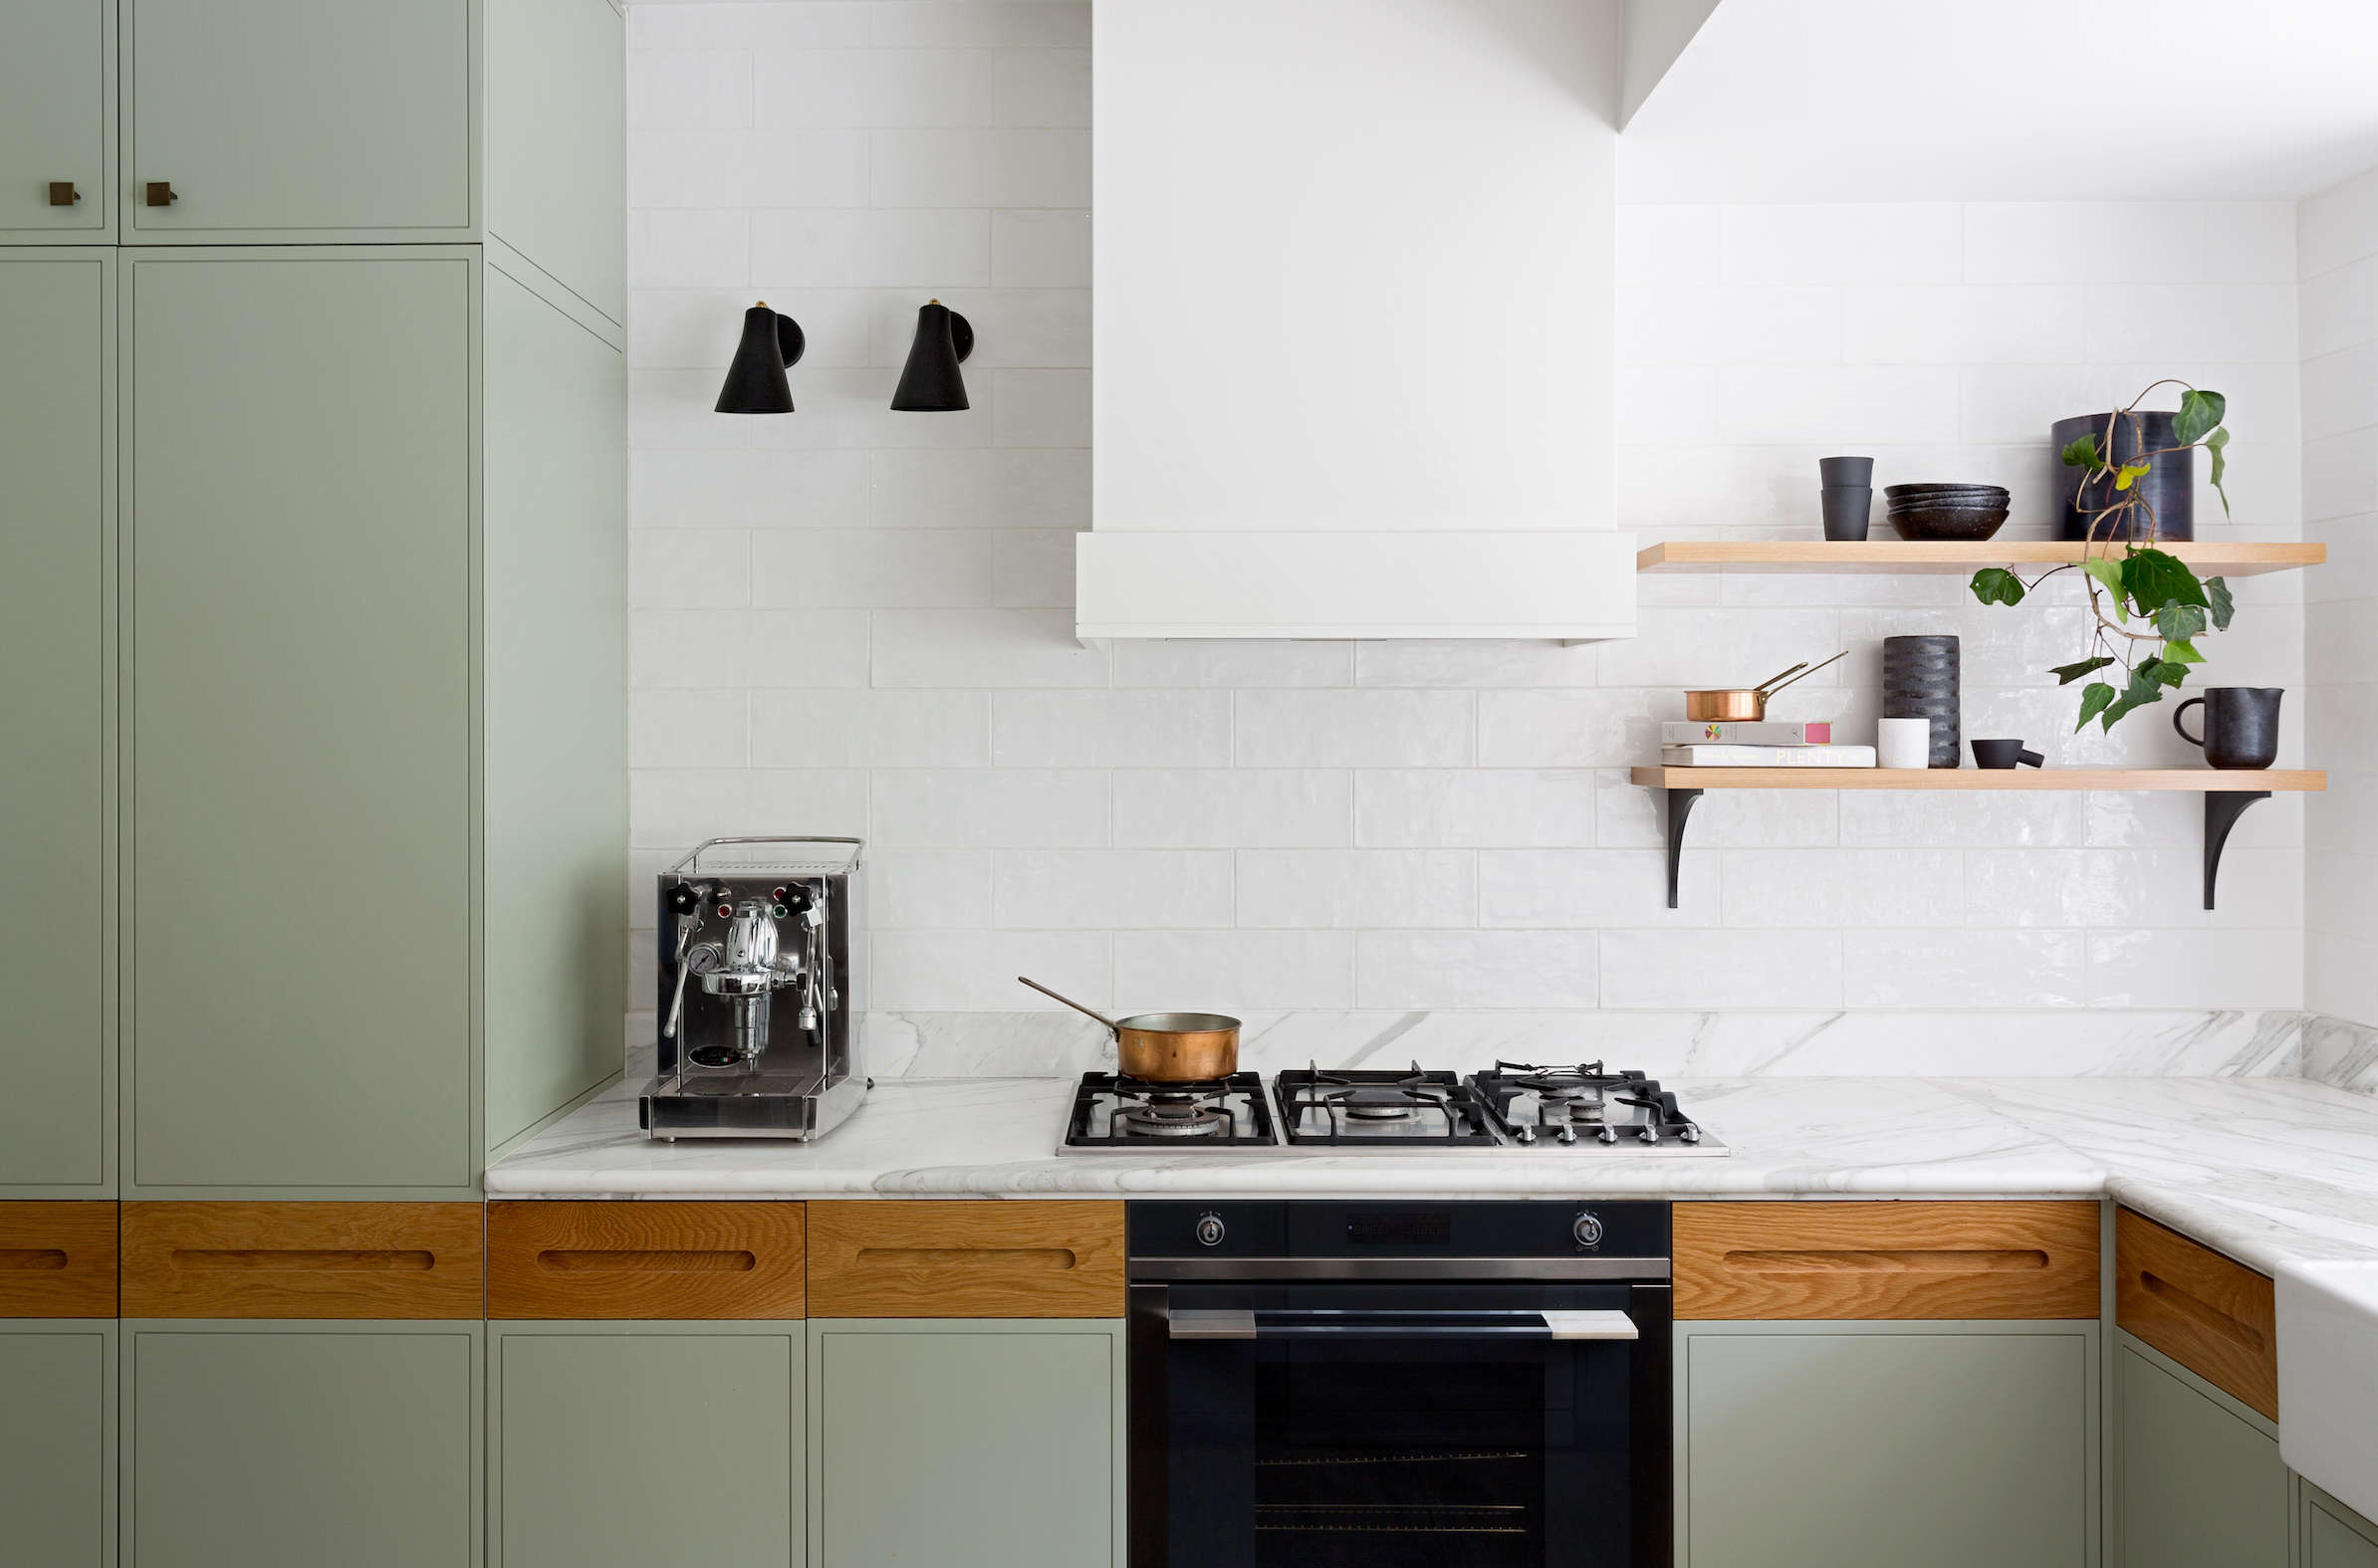 A clean and fresh-looking kitchen remodel with custom cabinets (painted sage with solid oak insets), Calacatta marble counters, and handmade subway tiles by interior designers Arent & Pyke of Sydney | Remodelista